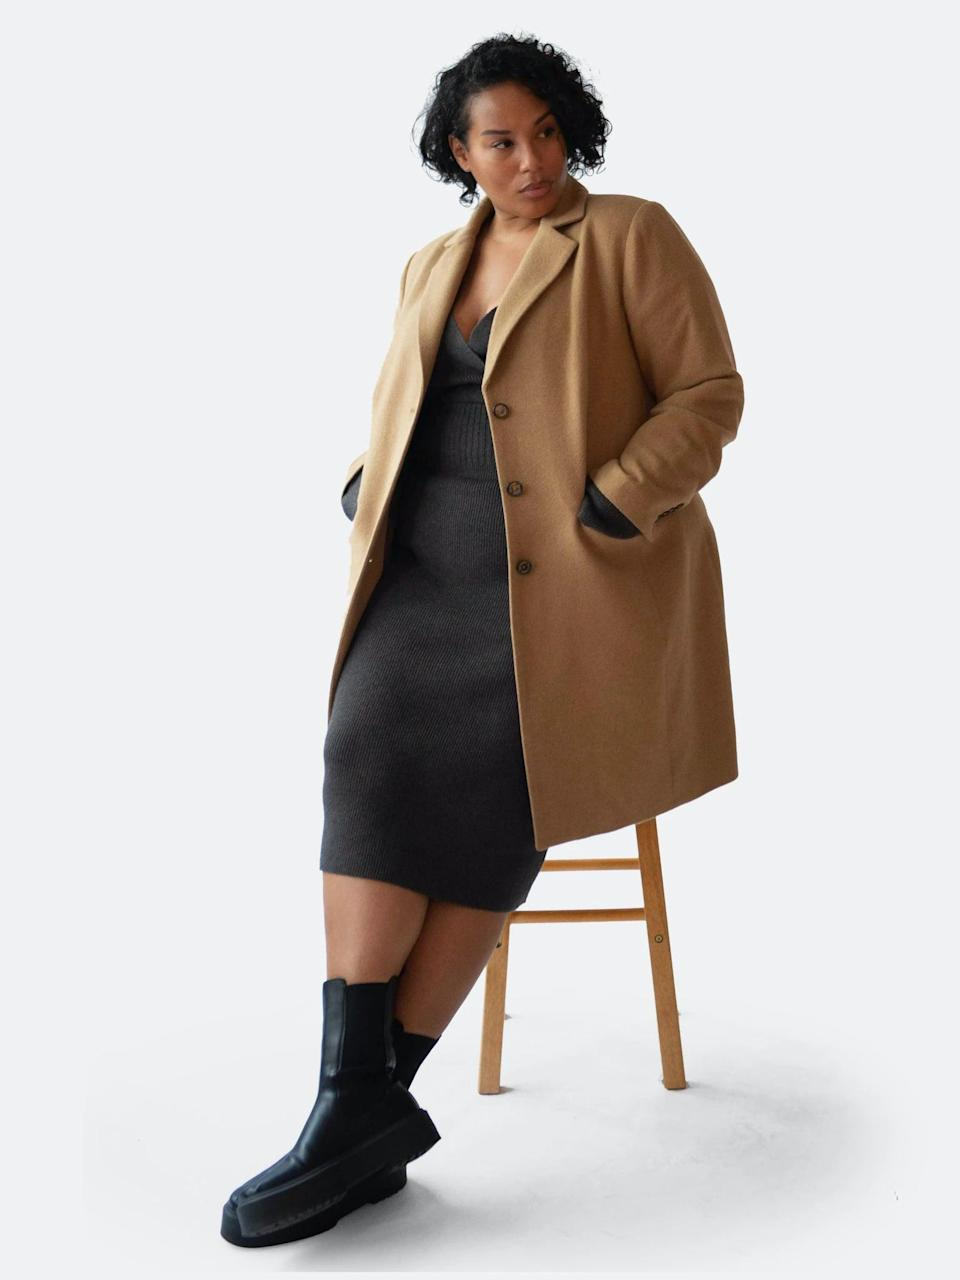 <p>Whether you wear this to a park walk or throw it over your sweatsuit to run errands, you will look effortless in this <span>Henning Camel Hair Coat</span> ($289). If you'd like to dress it up for a date night, wear it over a slip dress.</p>